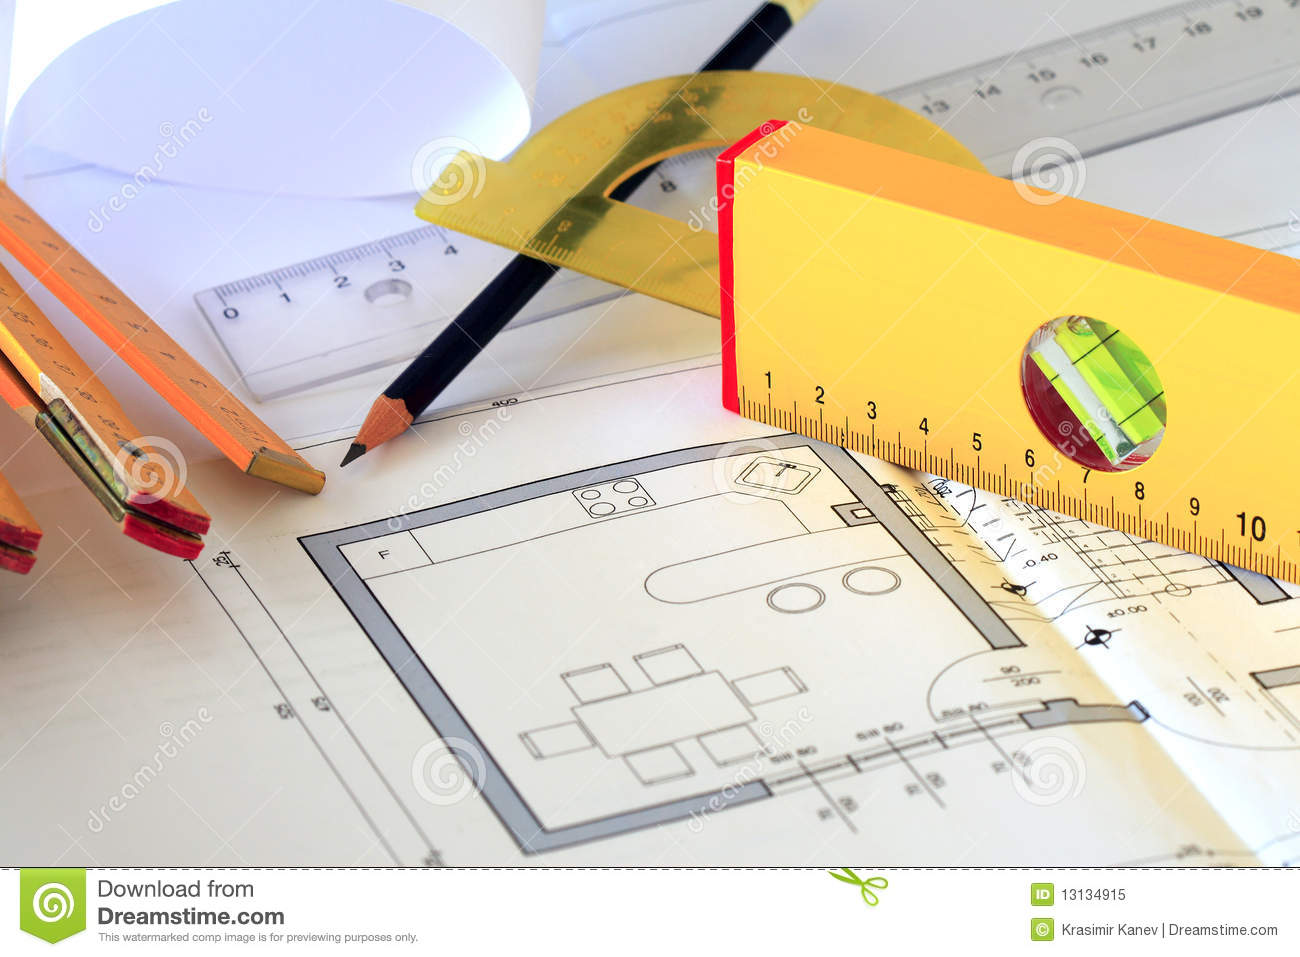 Architectural Drawings And Tools Royalty Free Stock Photo